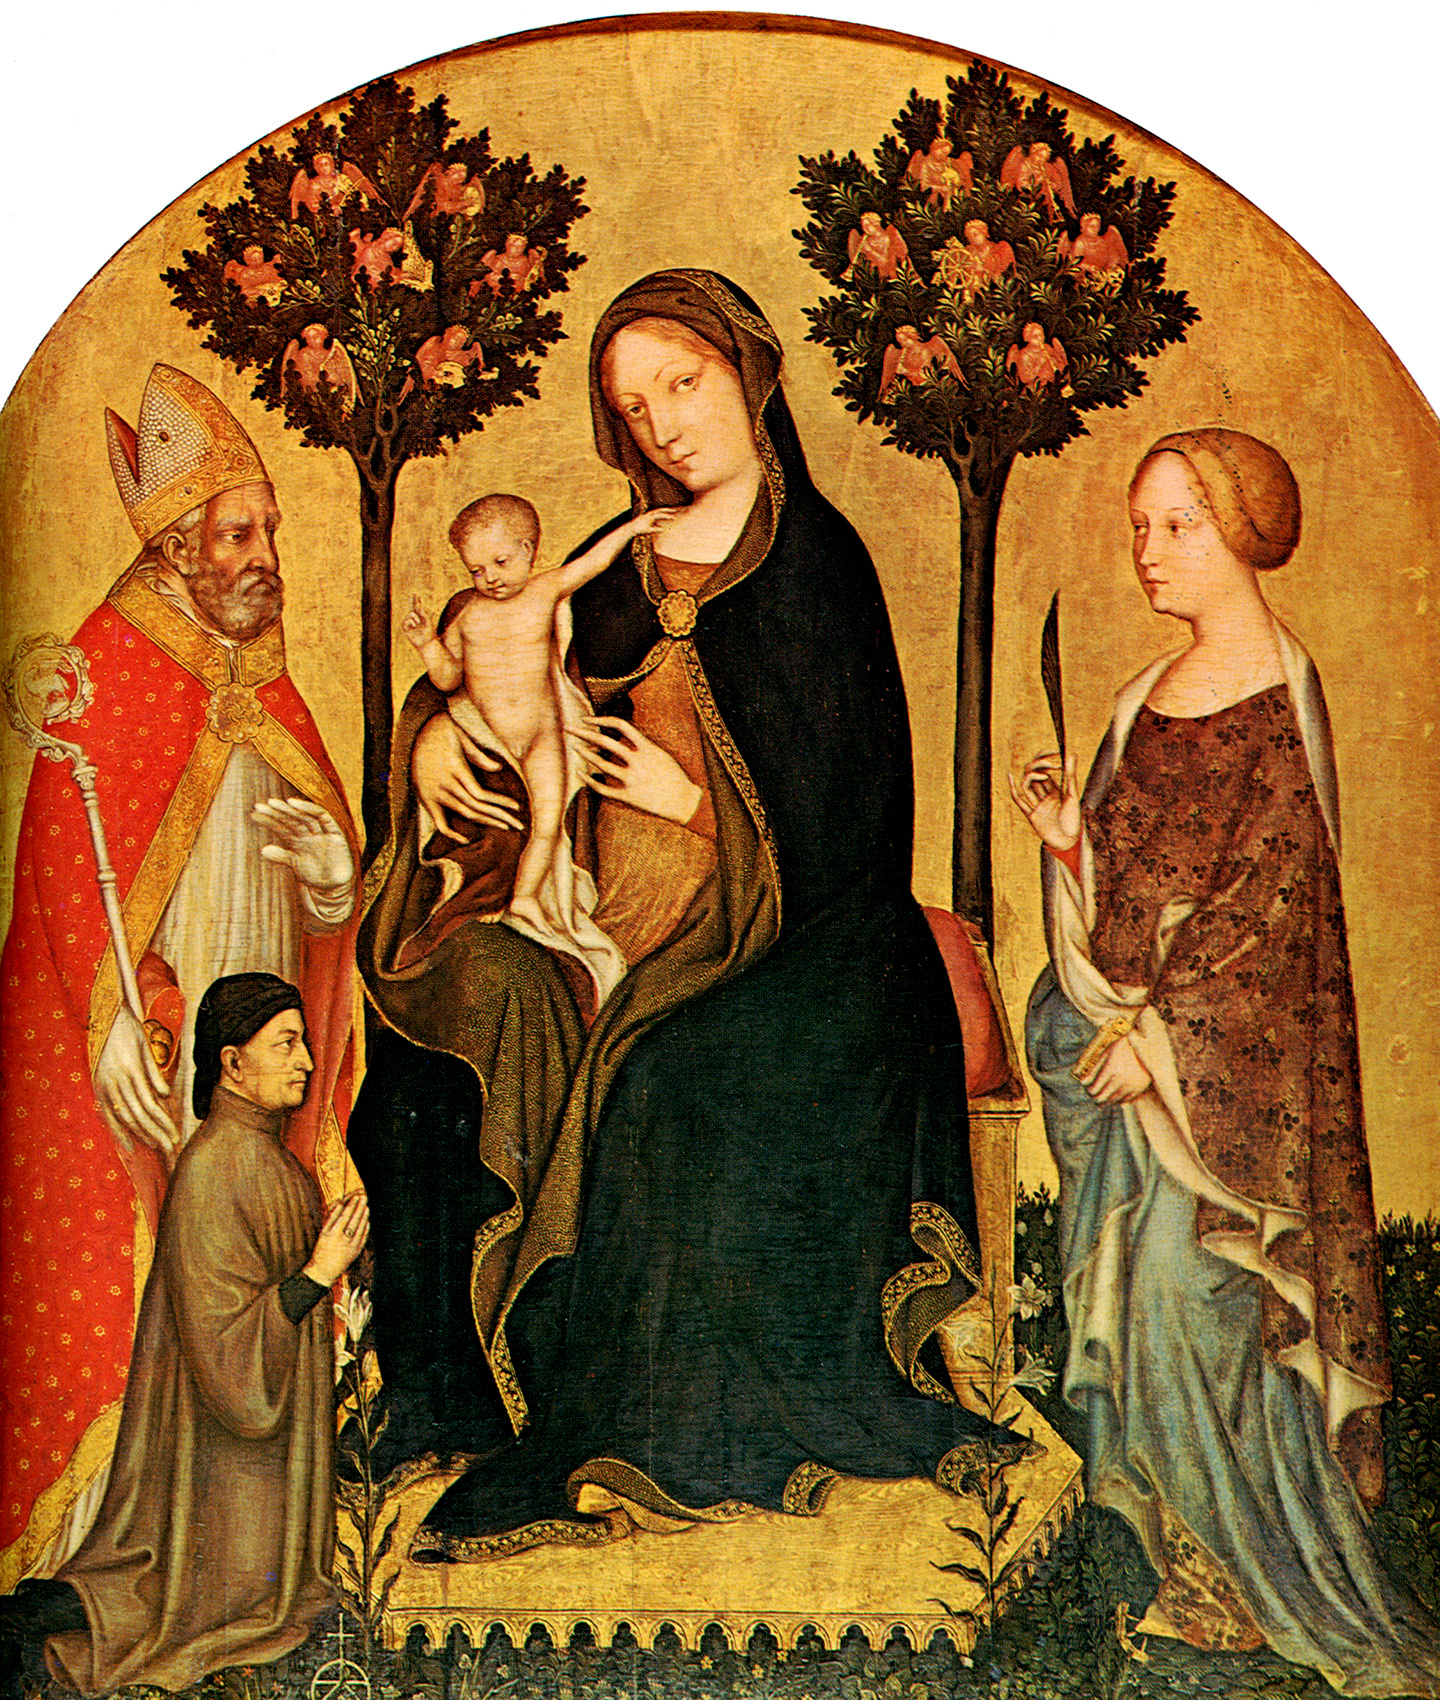 1395 Gentile_da_Fabriano_-_Mary_Enthroned_with_the_Child,_Saints_and_a_Donor_-_Gemaldegalerie Berlin